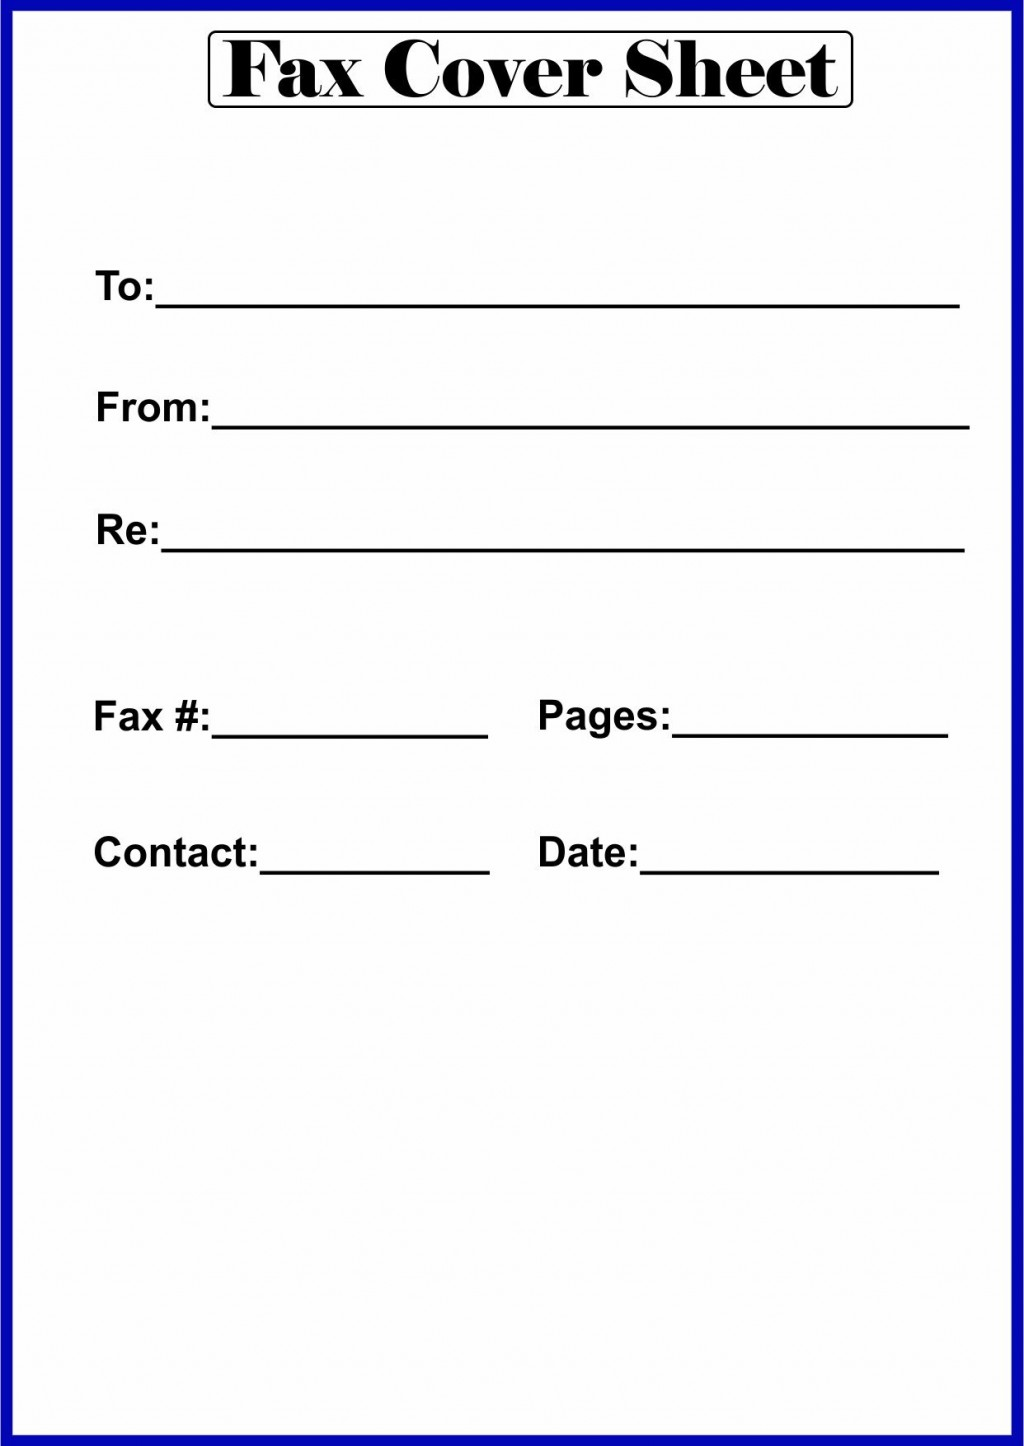 001 Rare Fax Template Microsoft Word Photo  Cover Sheet 2010 Letter BusinesLarge